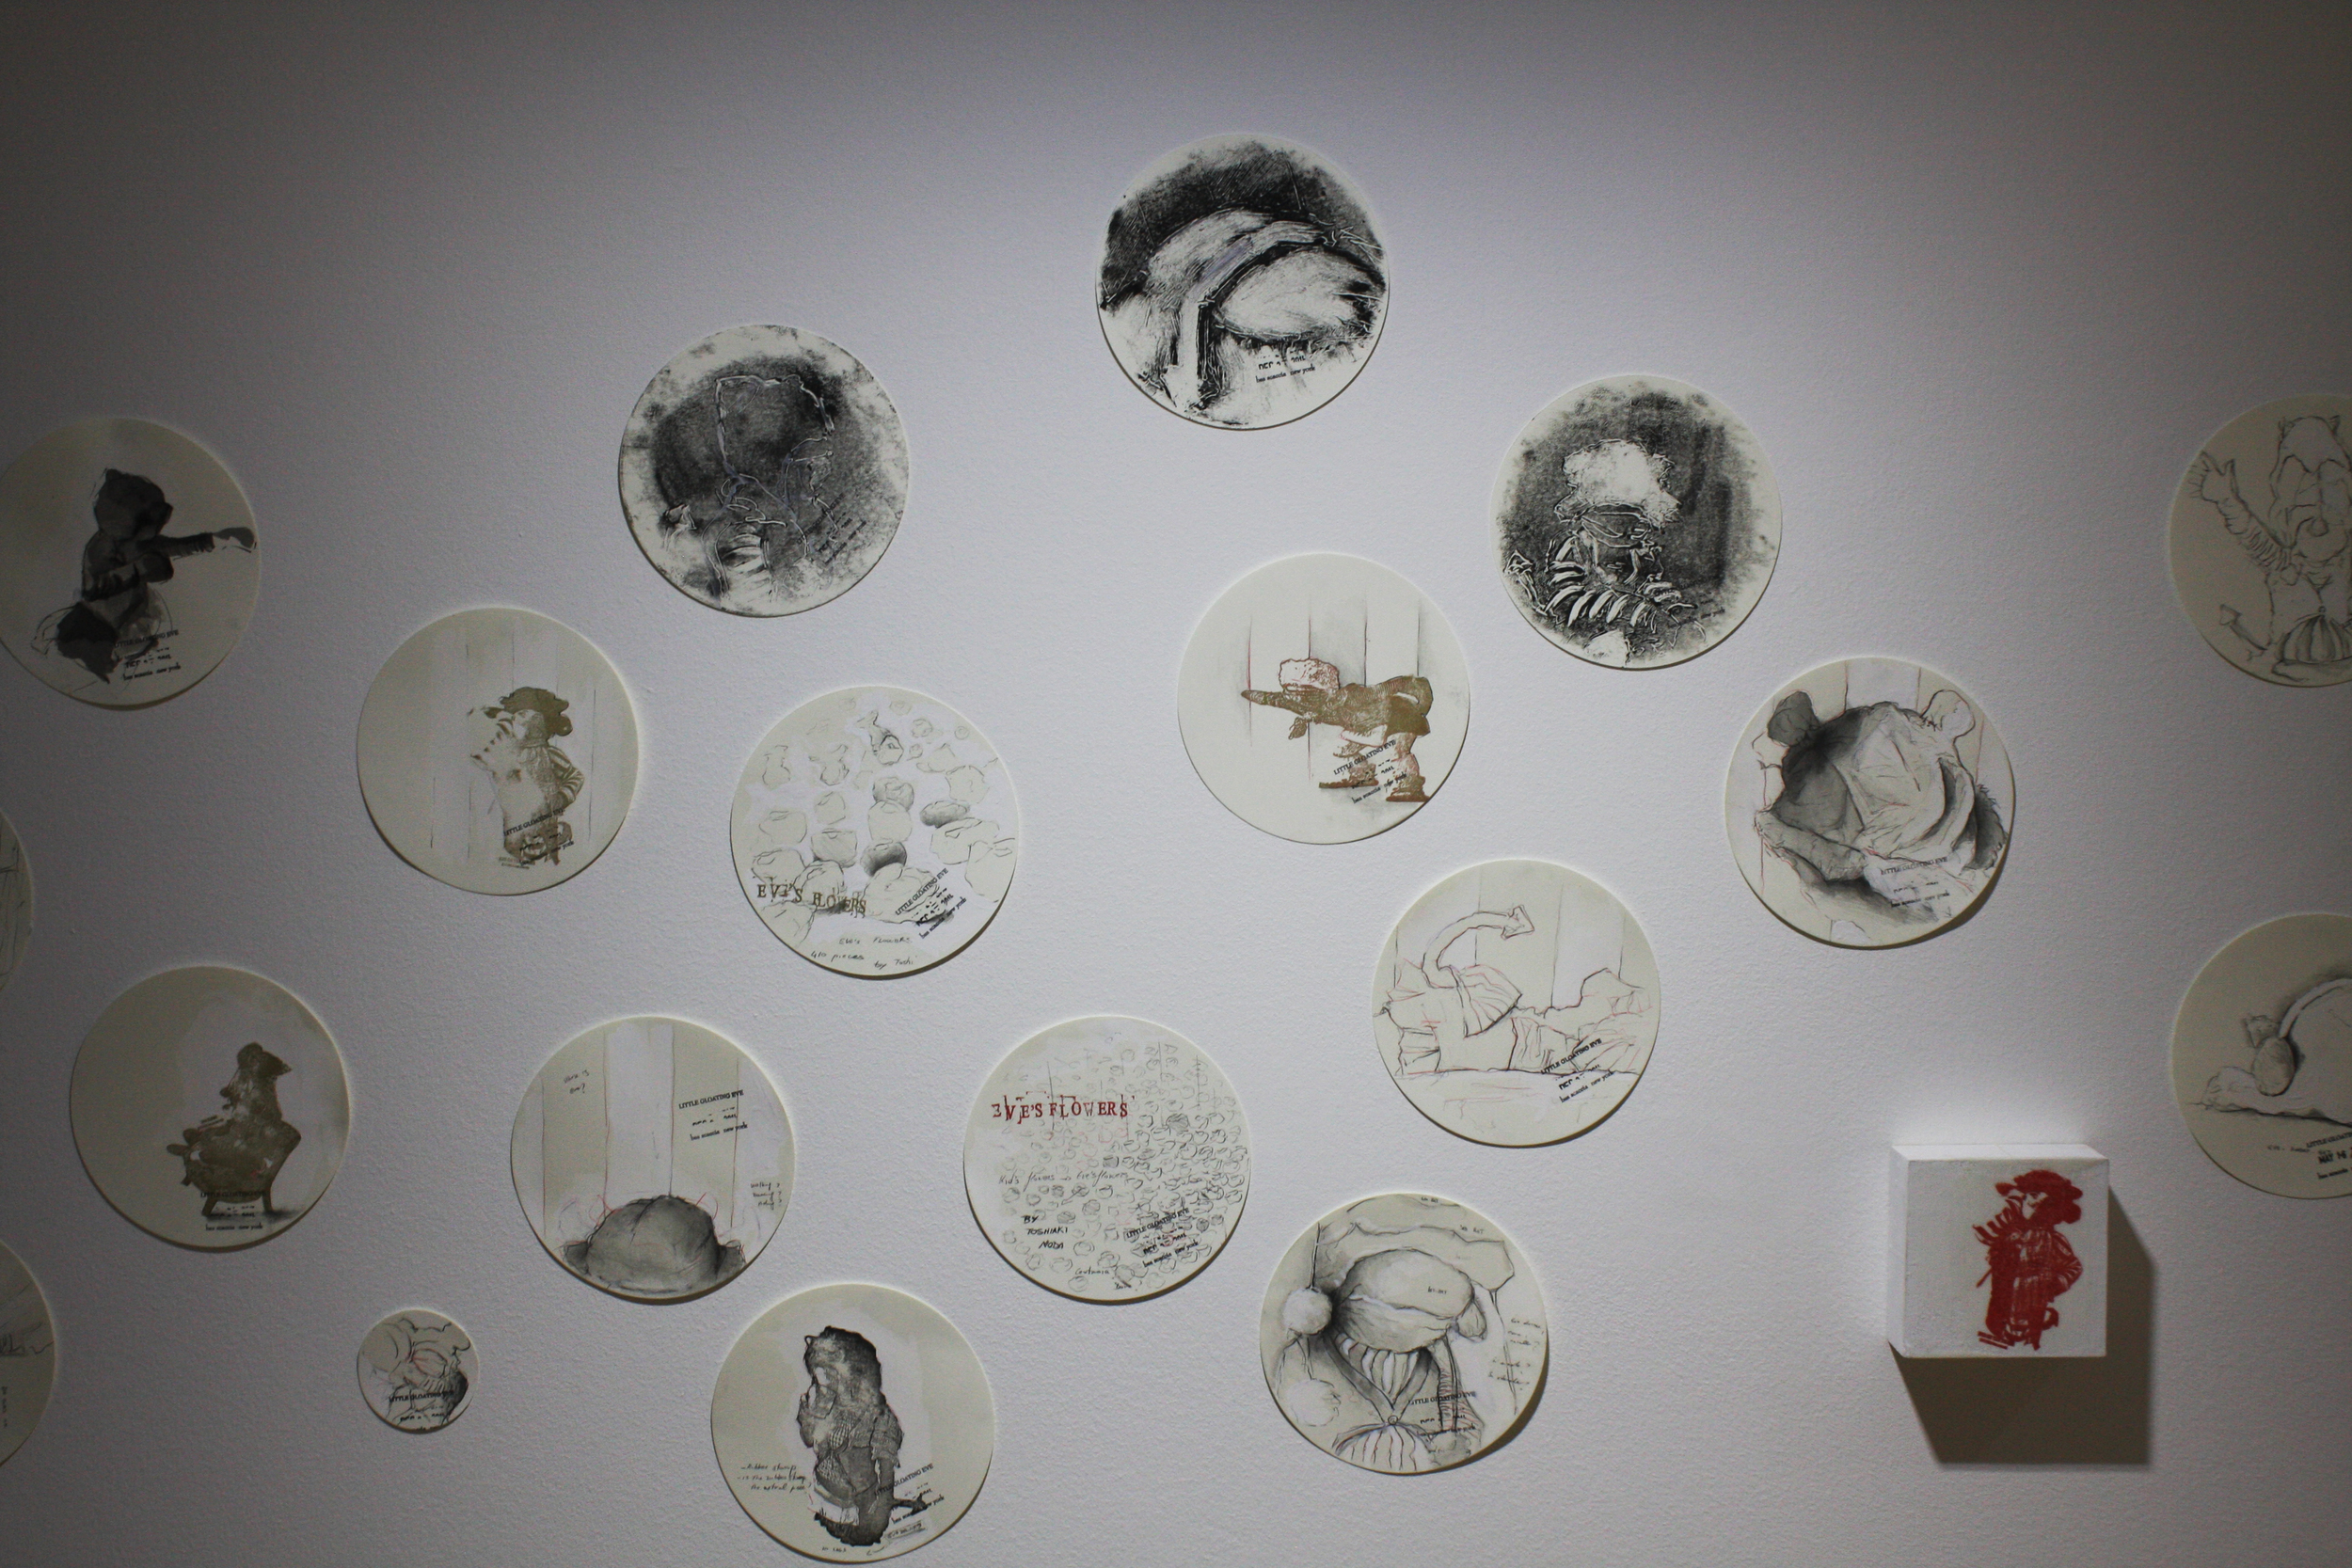 Little Gloating Eve, installation view, sketches  Effearte.Sept. 2014